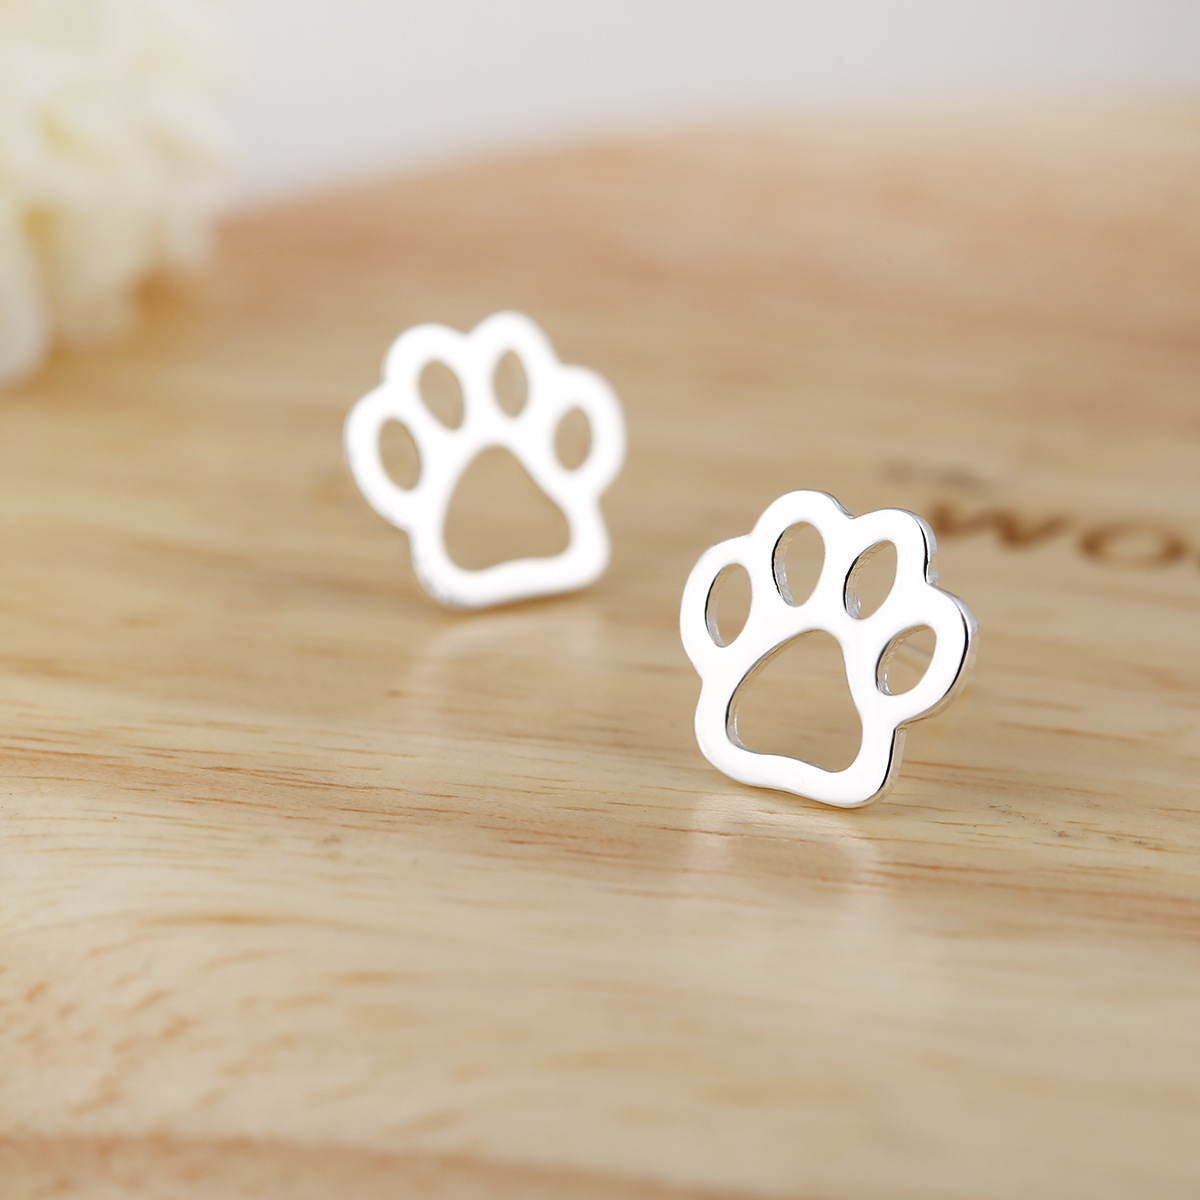 by new earrings dog fashion gift arrival earring paw cat com online stud cheap cute jl print women dhgate pione animal product